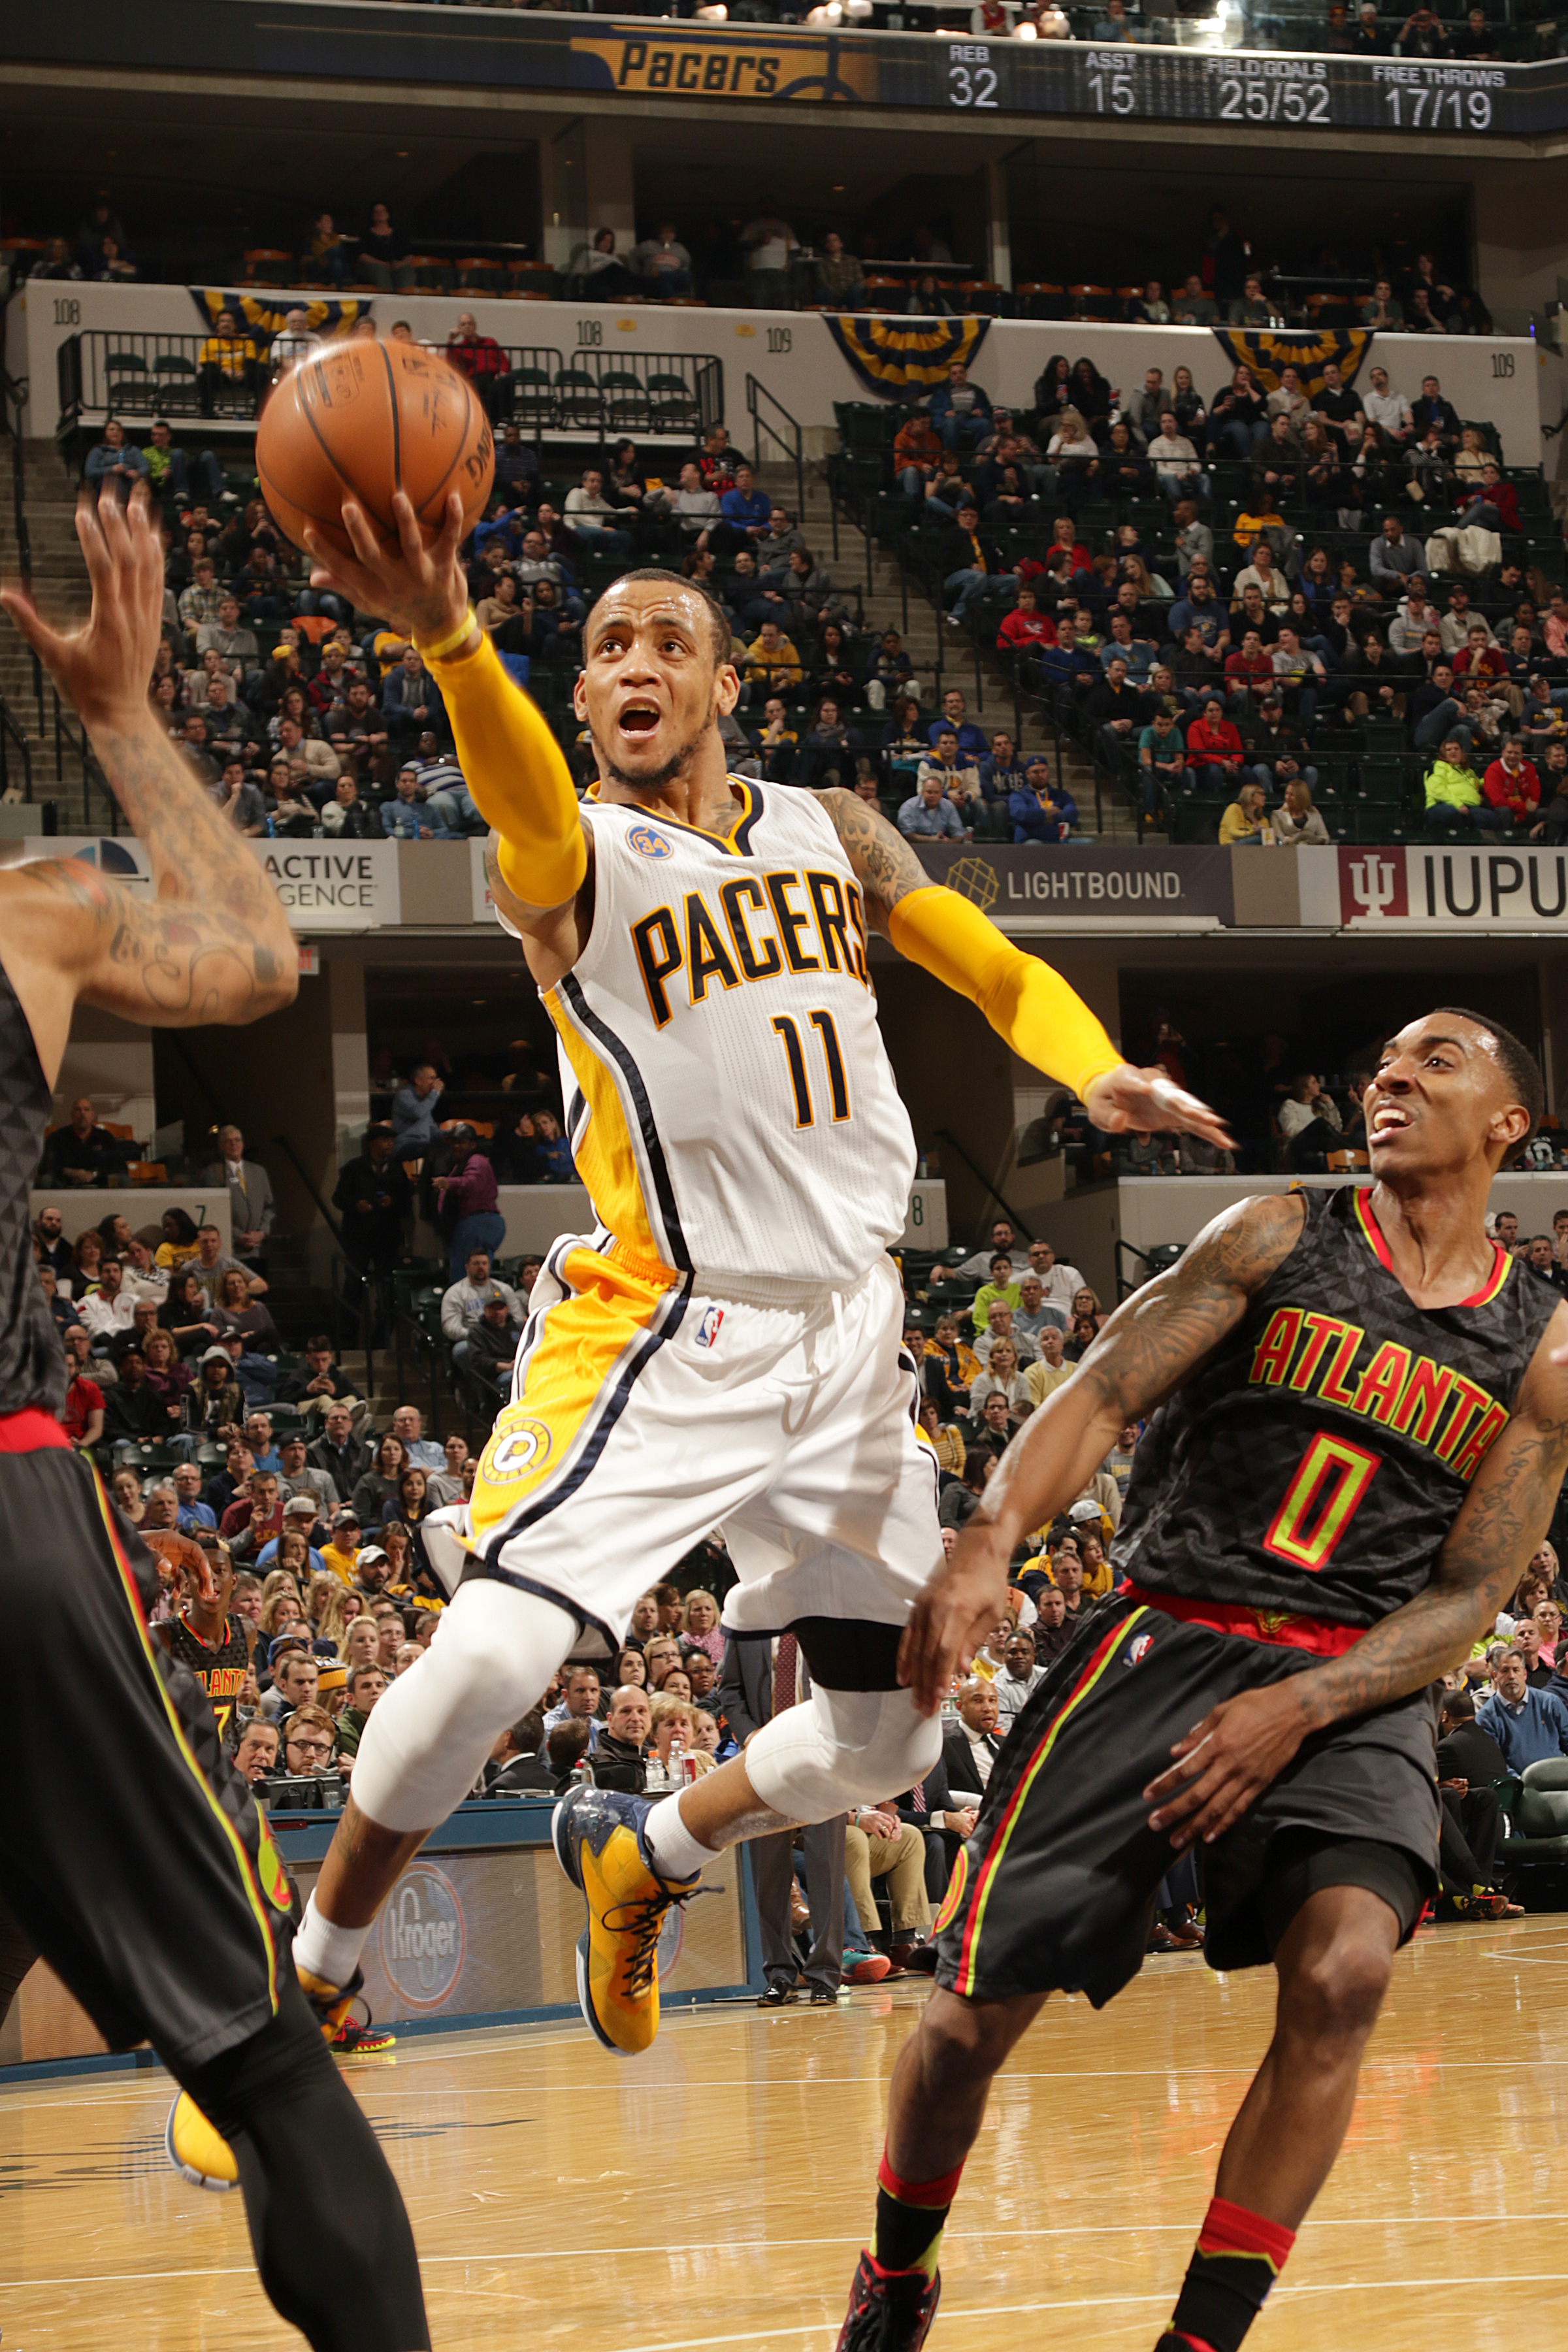 INDIANAPOLIS, IN - JANUARY 28:  Monta Ellis #11 of the Indiana Pacers shoots the ball against the Atlanta Hawks on January 28, 2016 at Bankers Life Fieldhouse in Indianapolis, Indiana. (Photo by Ron Hoskins/NBAE via Getty Images)